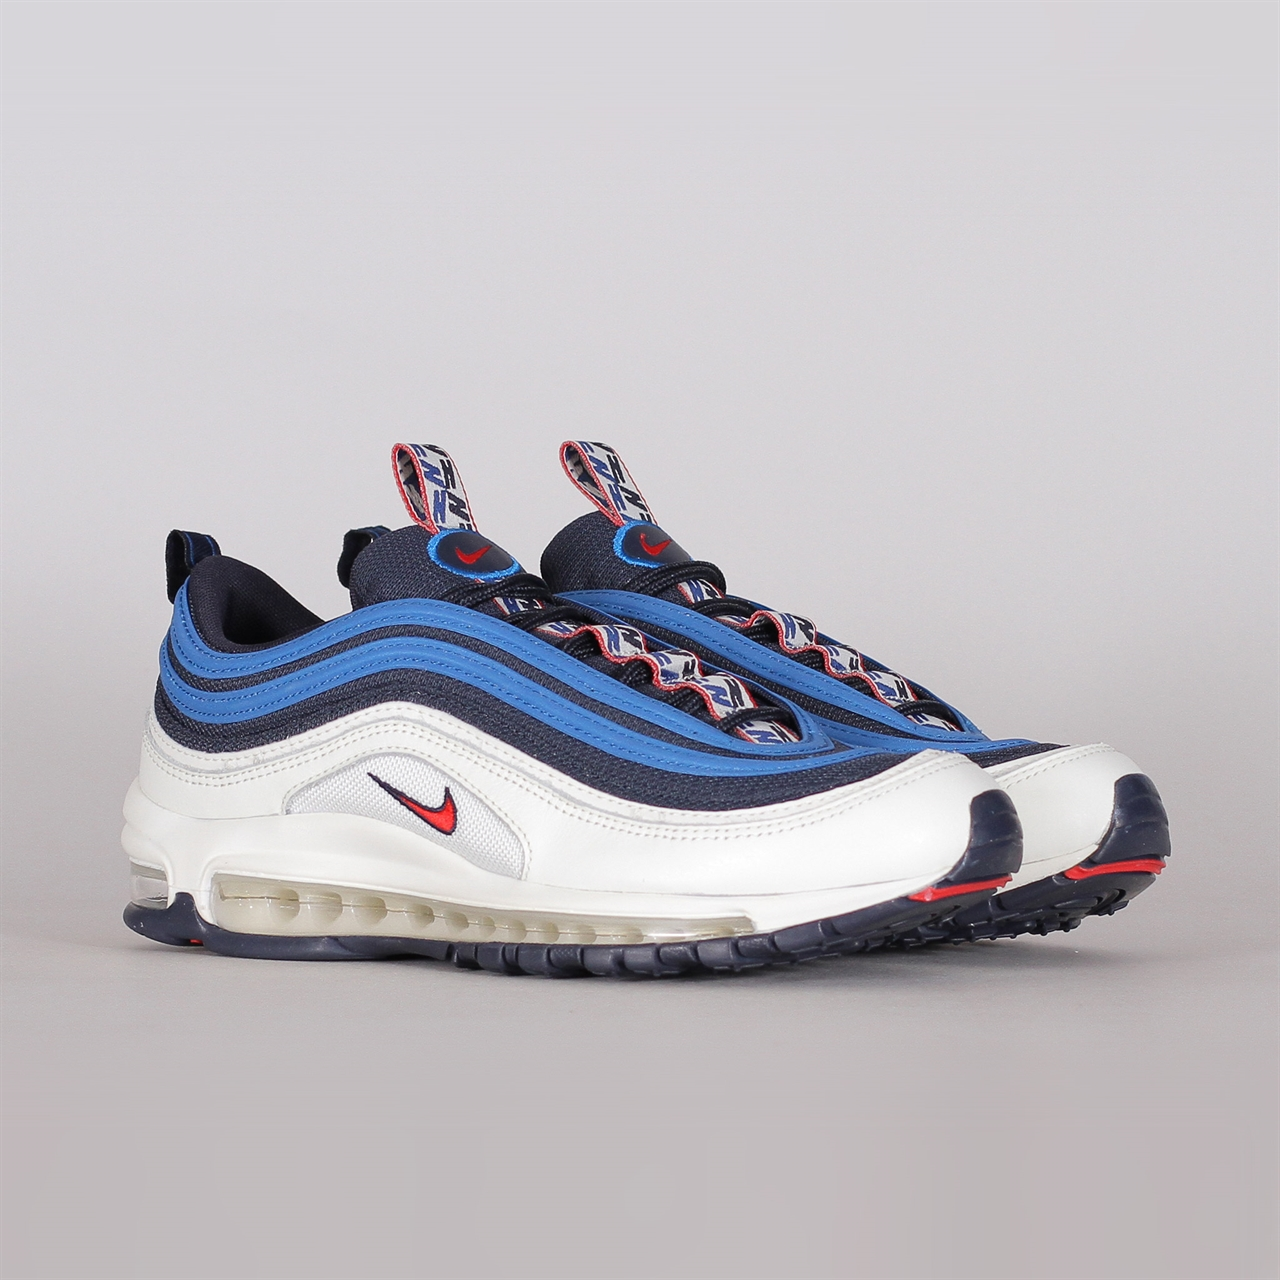 check out 0fb51 ba09d Air Max 97 SE (AQ4126-400)